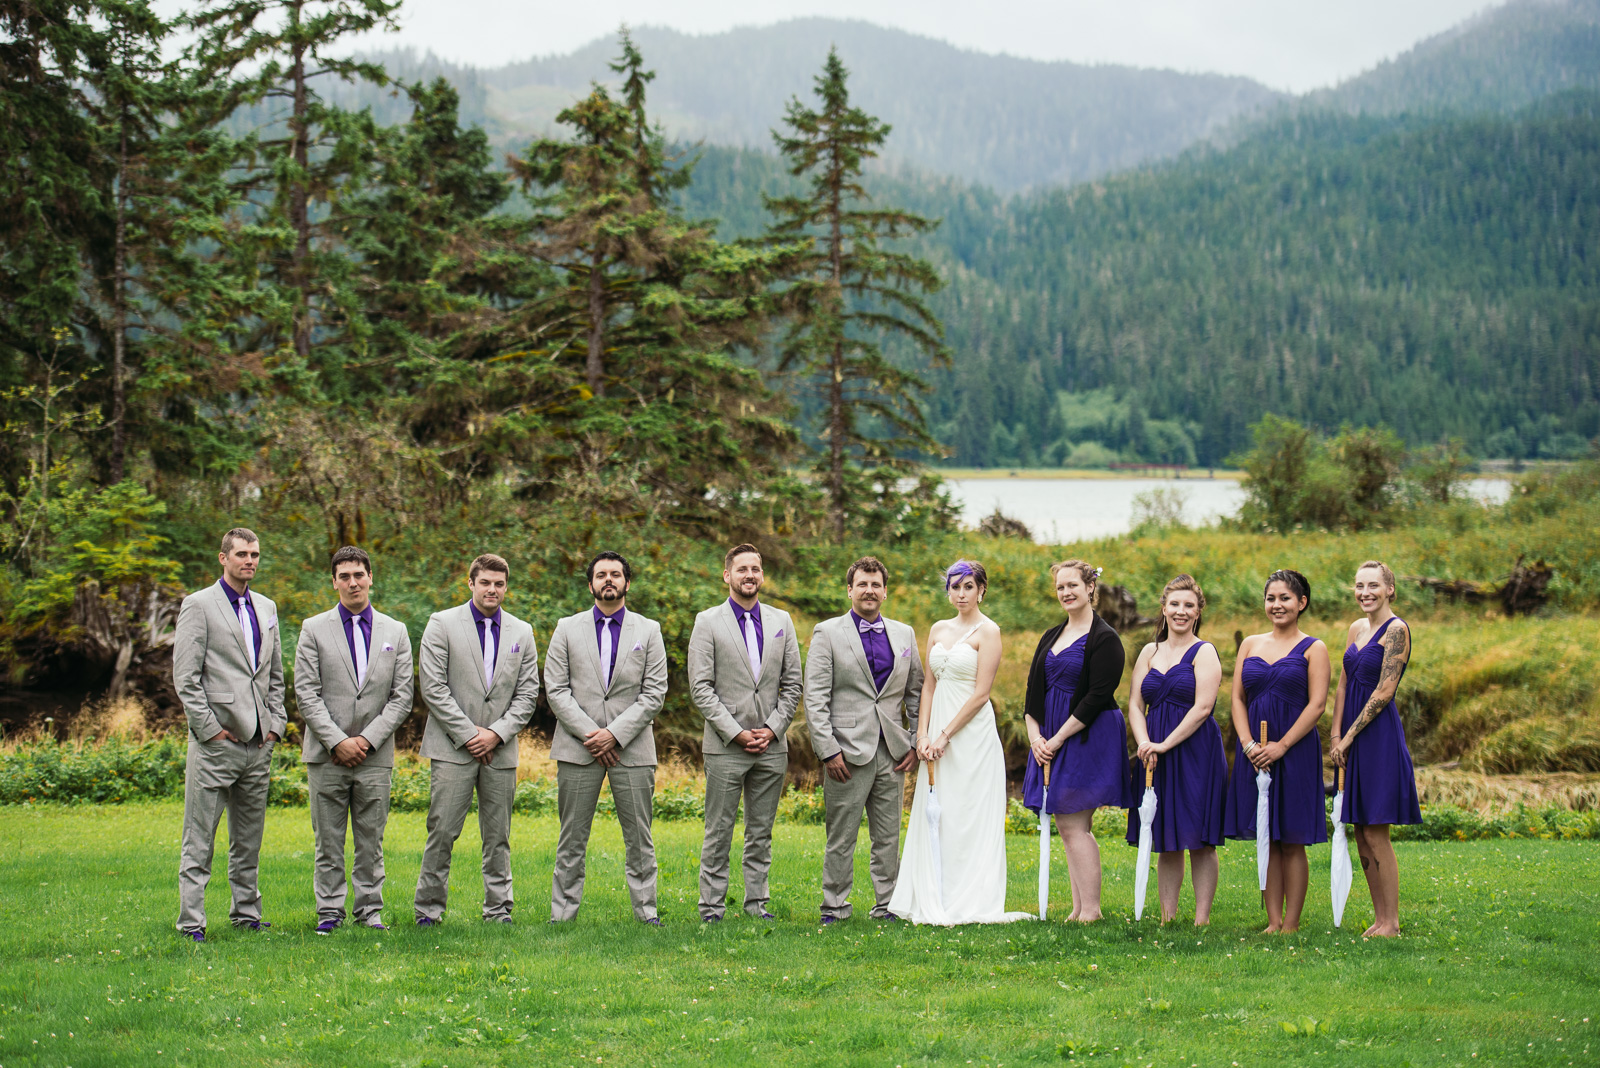 bc-wedding-photographers-kitimat-minette-bay-lodge-wedding-13.jpg